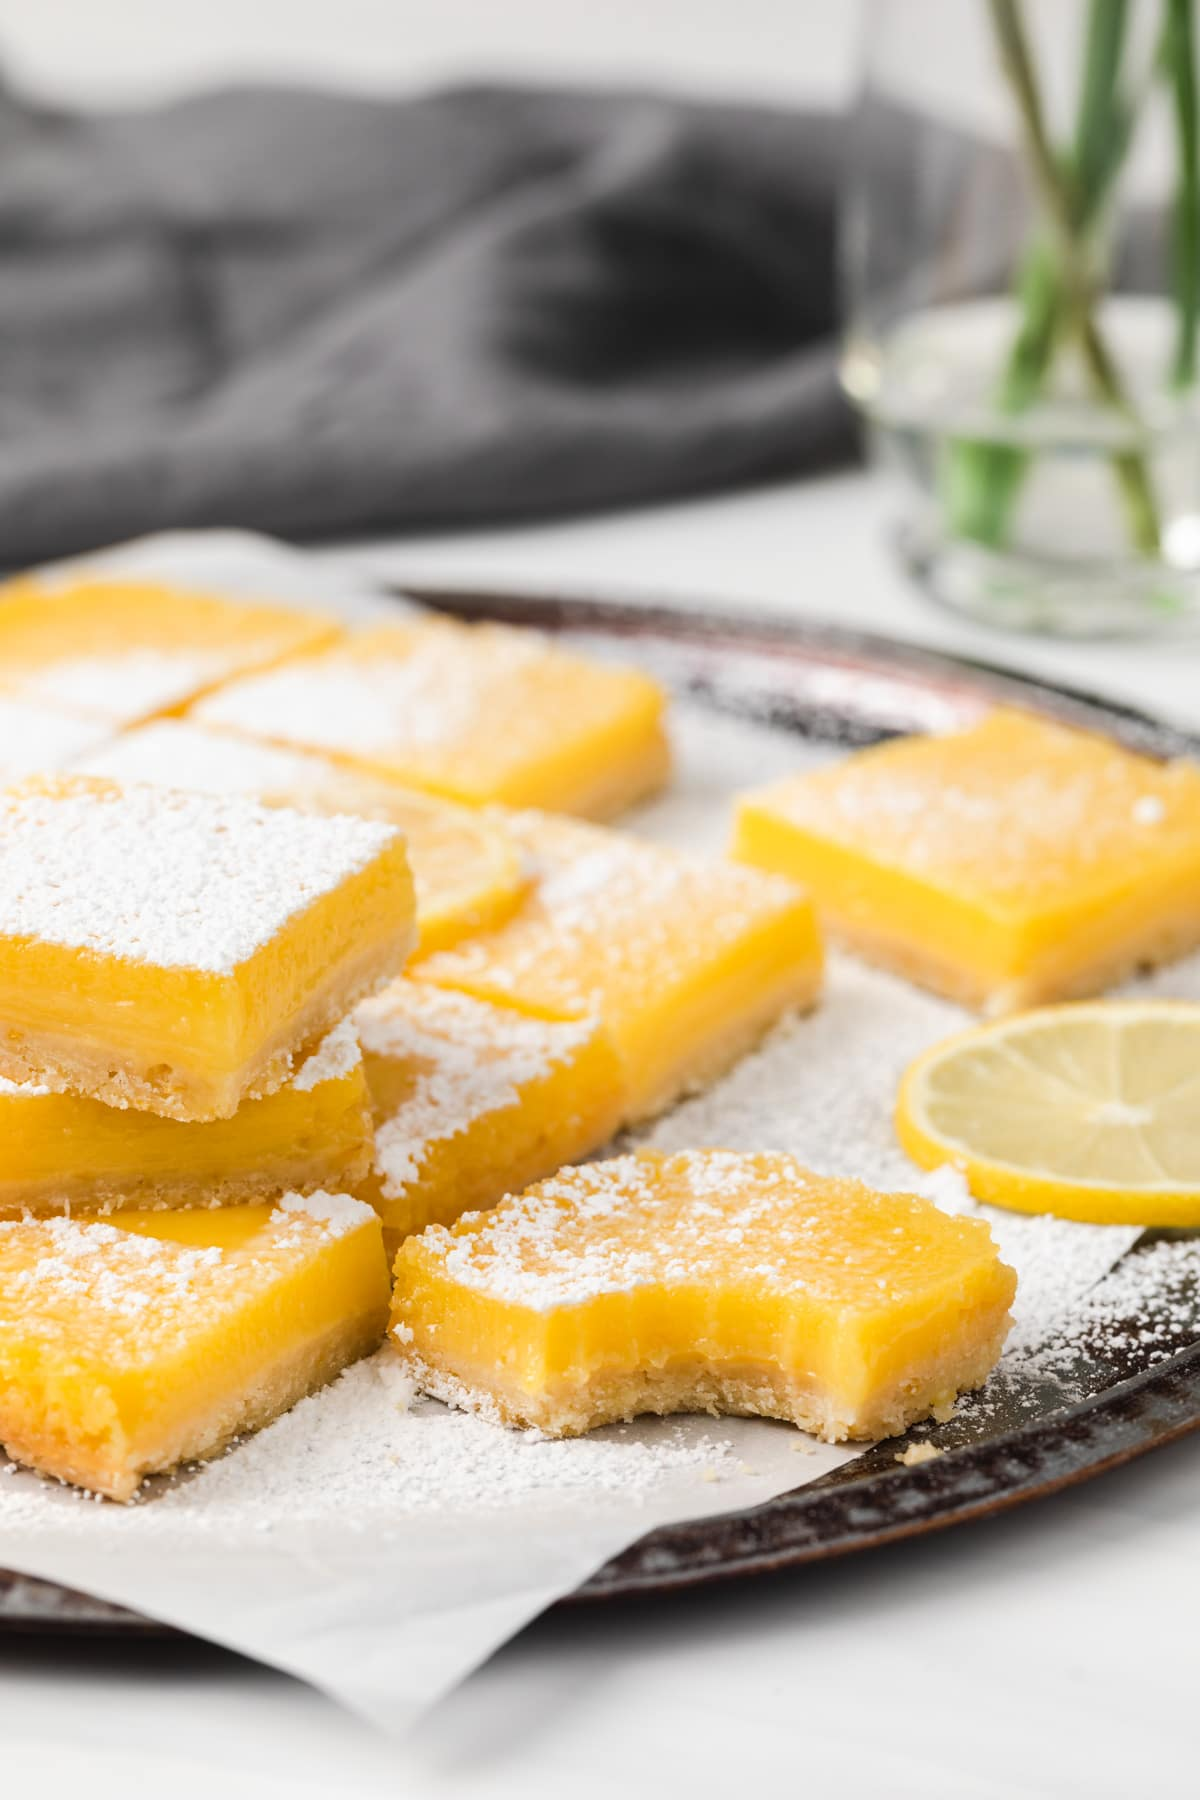 lemon bars on a parchment lined baking tray with a bite taken out of one